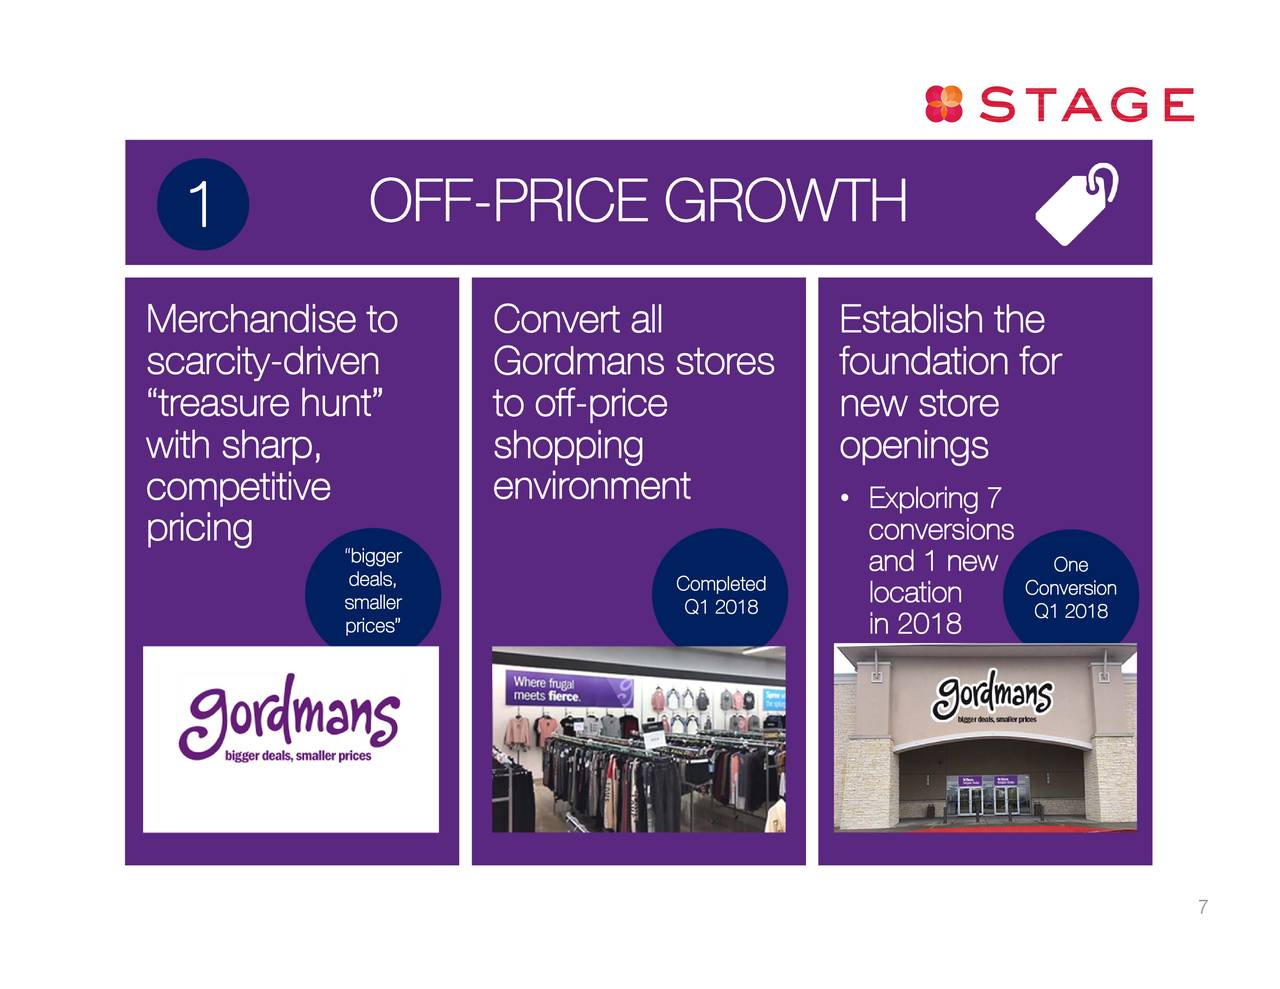 Stage Stores Inc 2018 Q1 Results Earnings Call Slides Stage